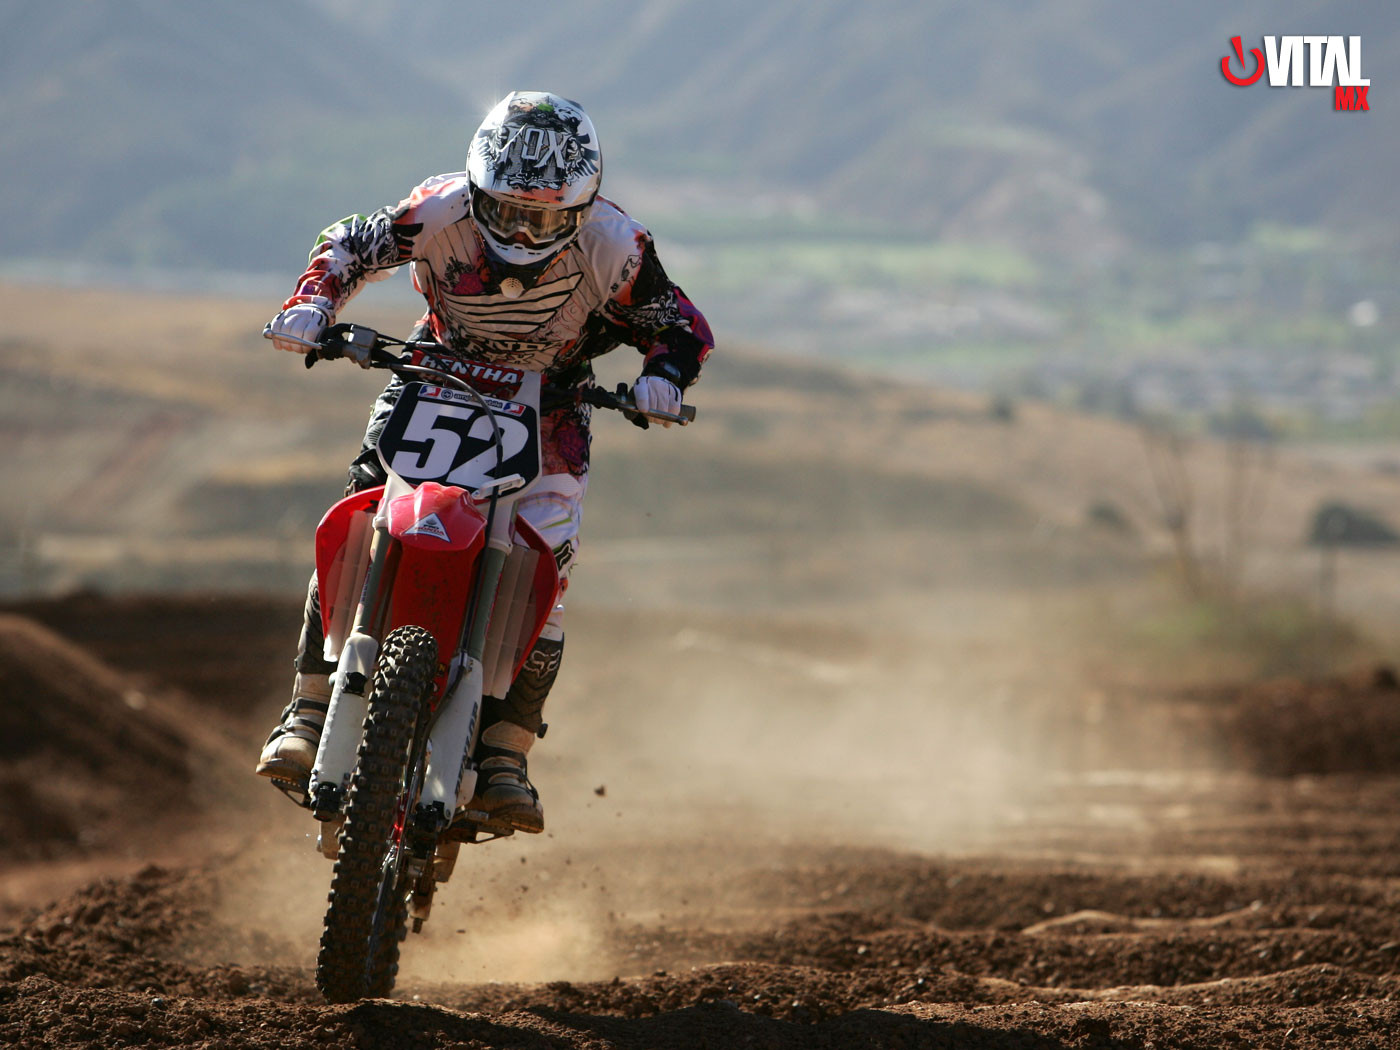 Tommy Hahn 1400 x 1050 - 2006 Tommy Hahn 12/05 - Motocross Pictures - Vital MX